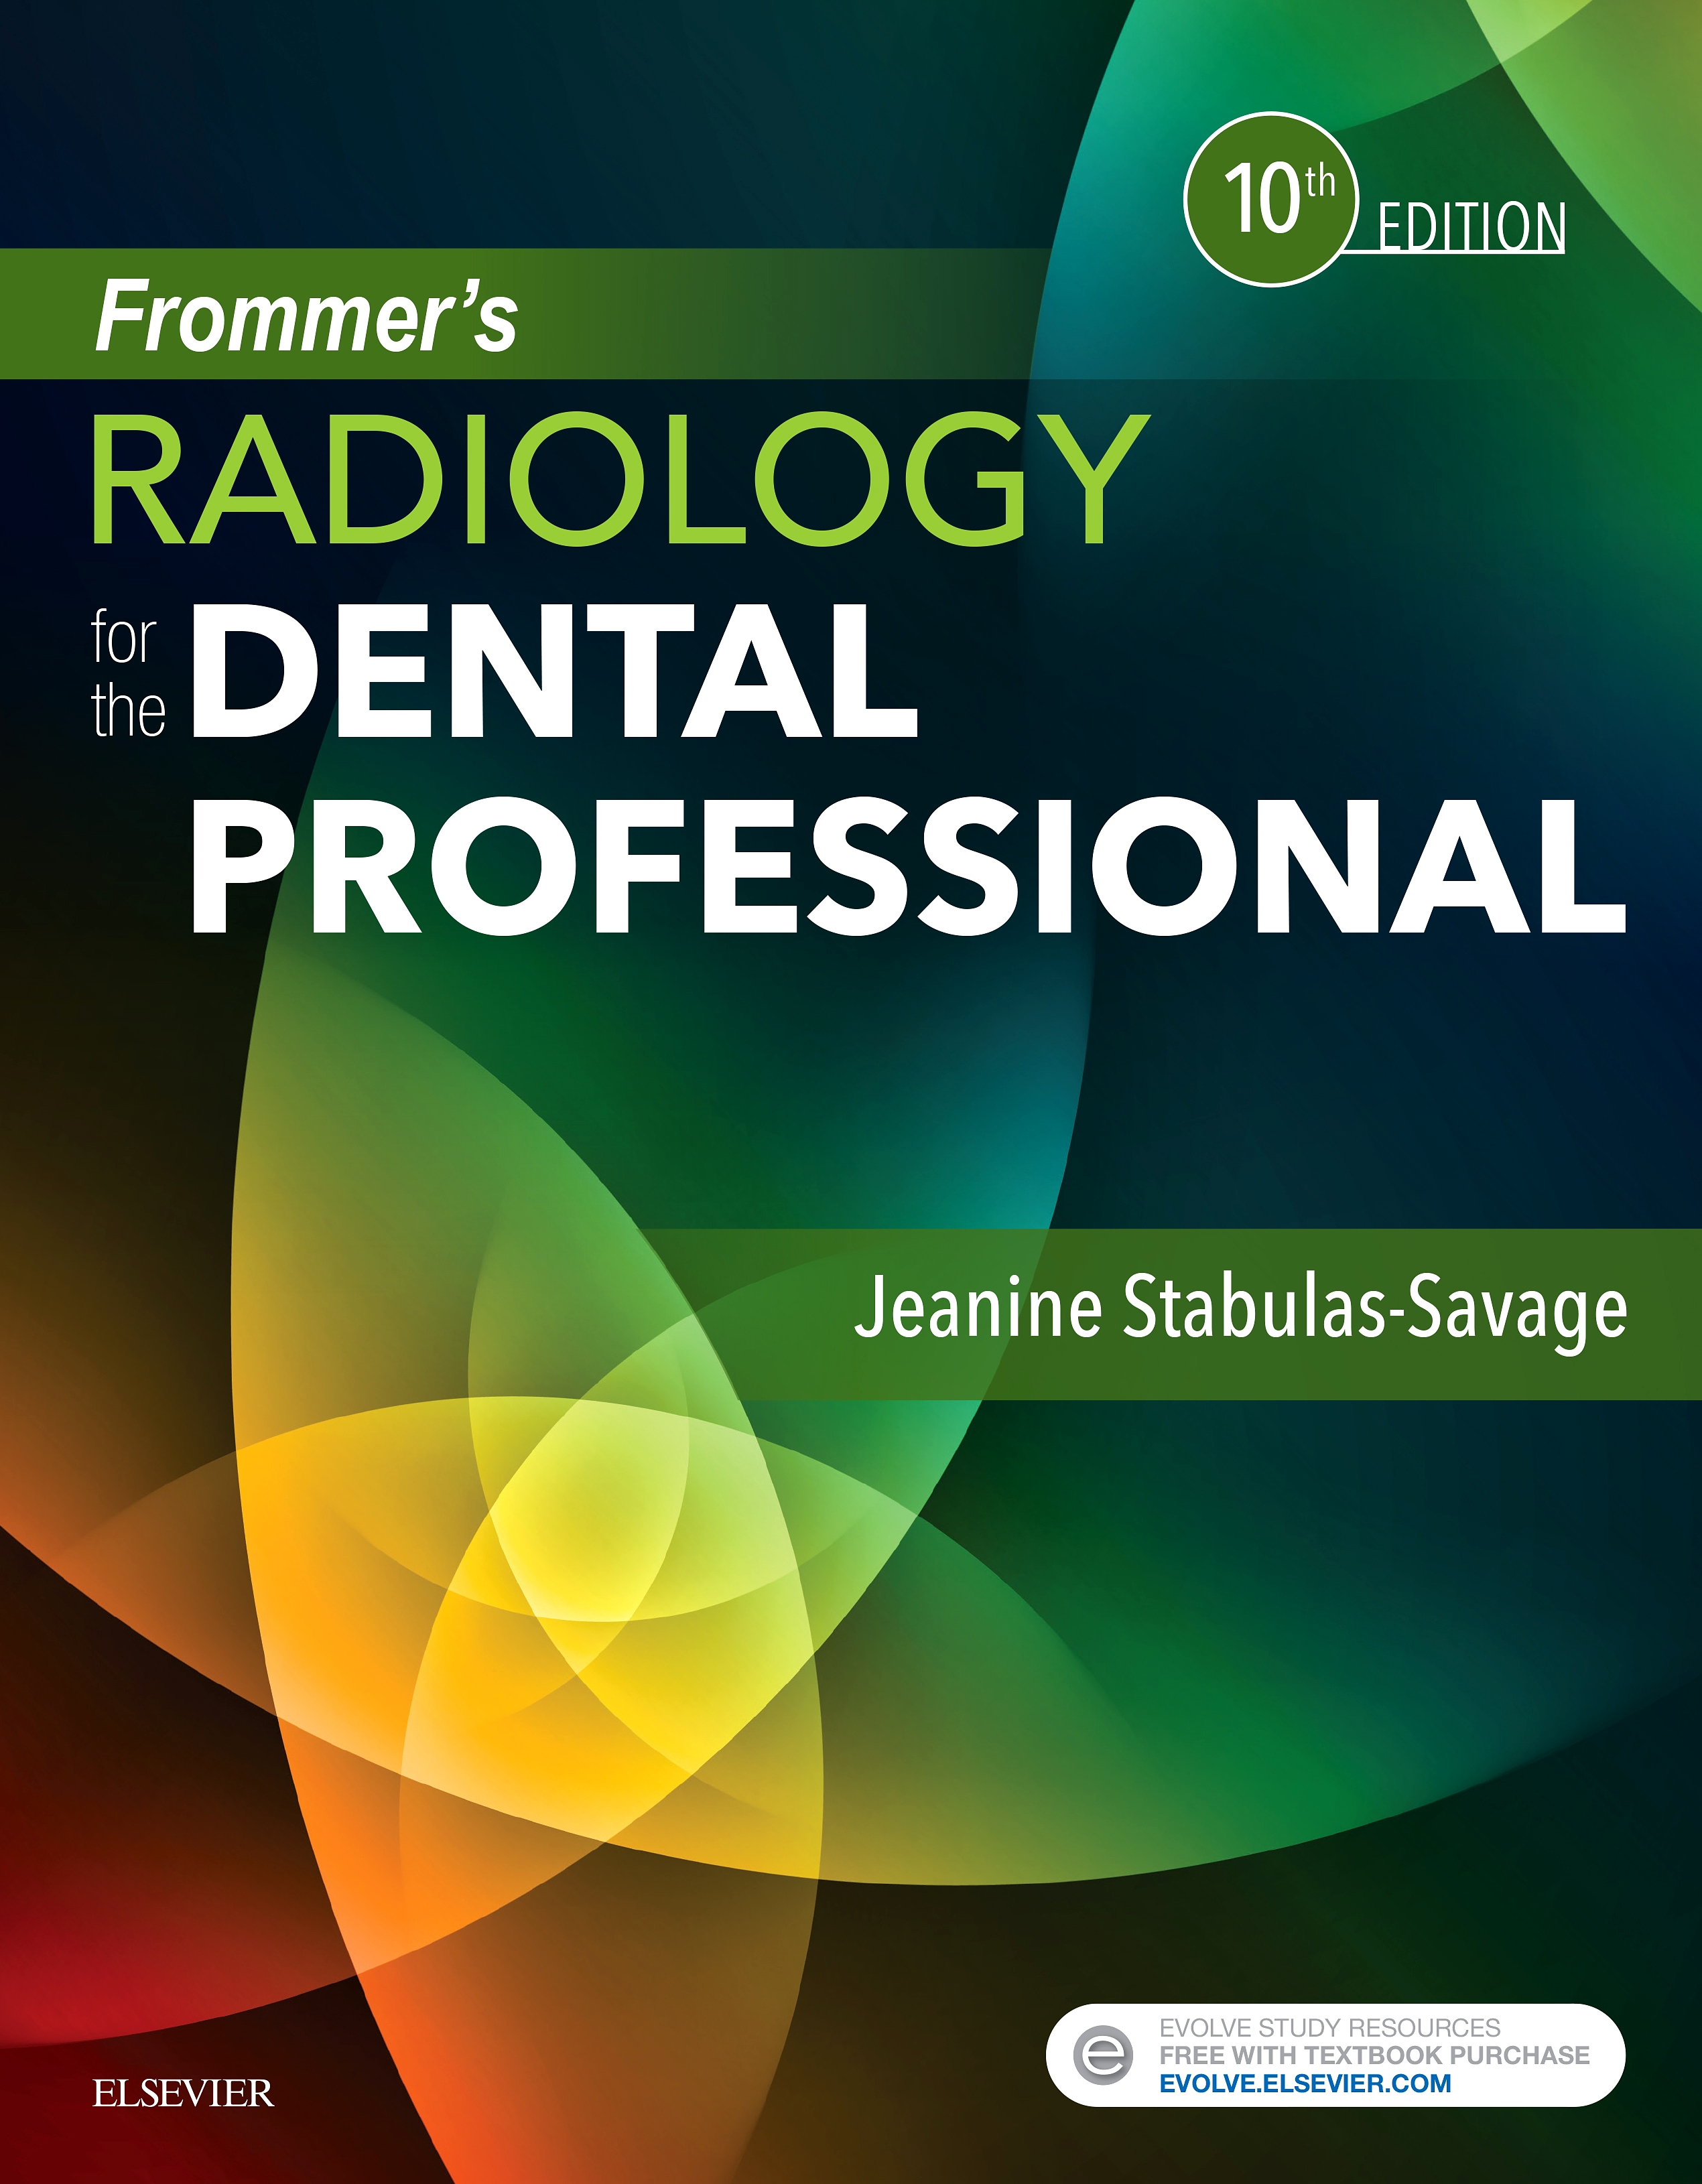 Evolve Resources for Frommer's Radiology for the Dental Professional, 10th Edition